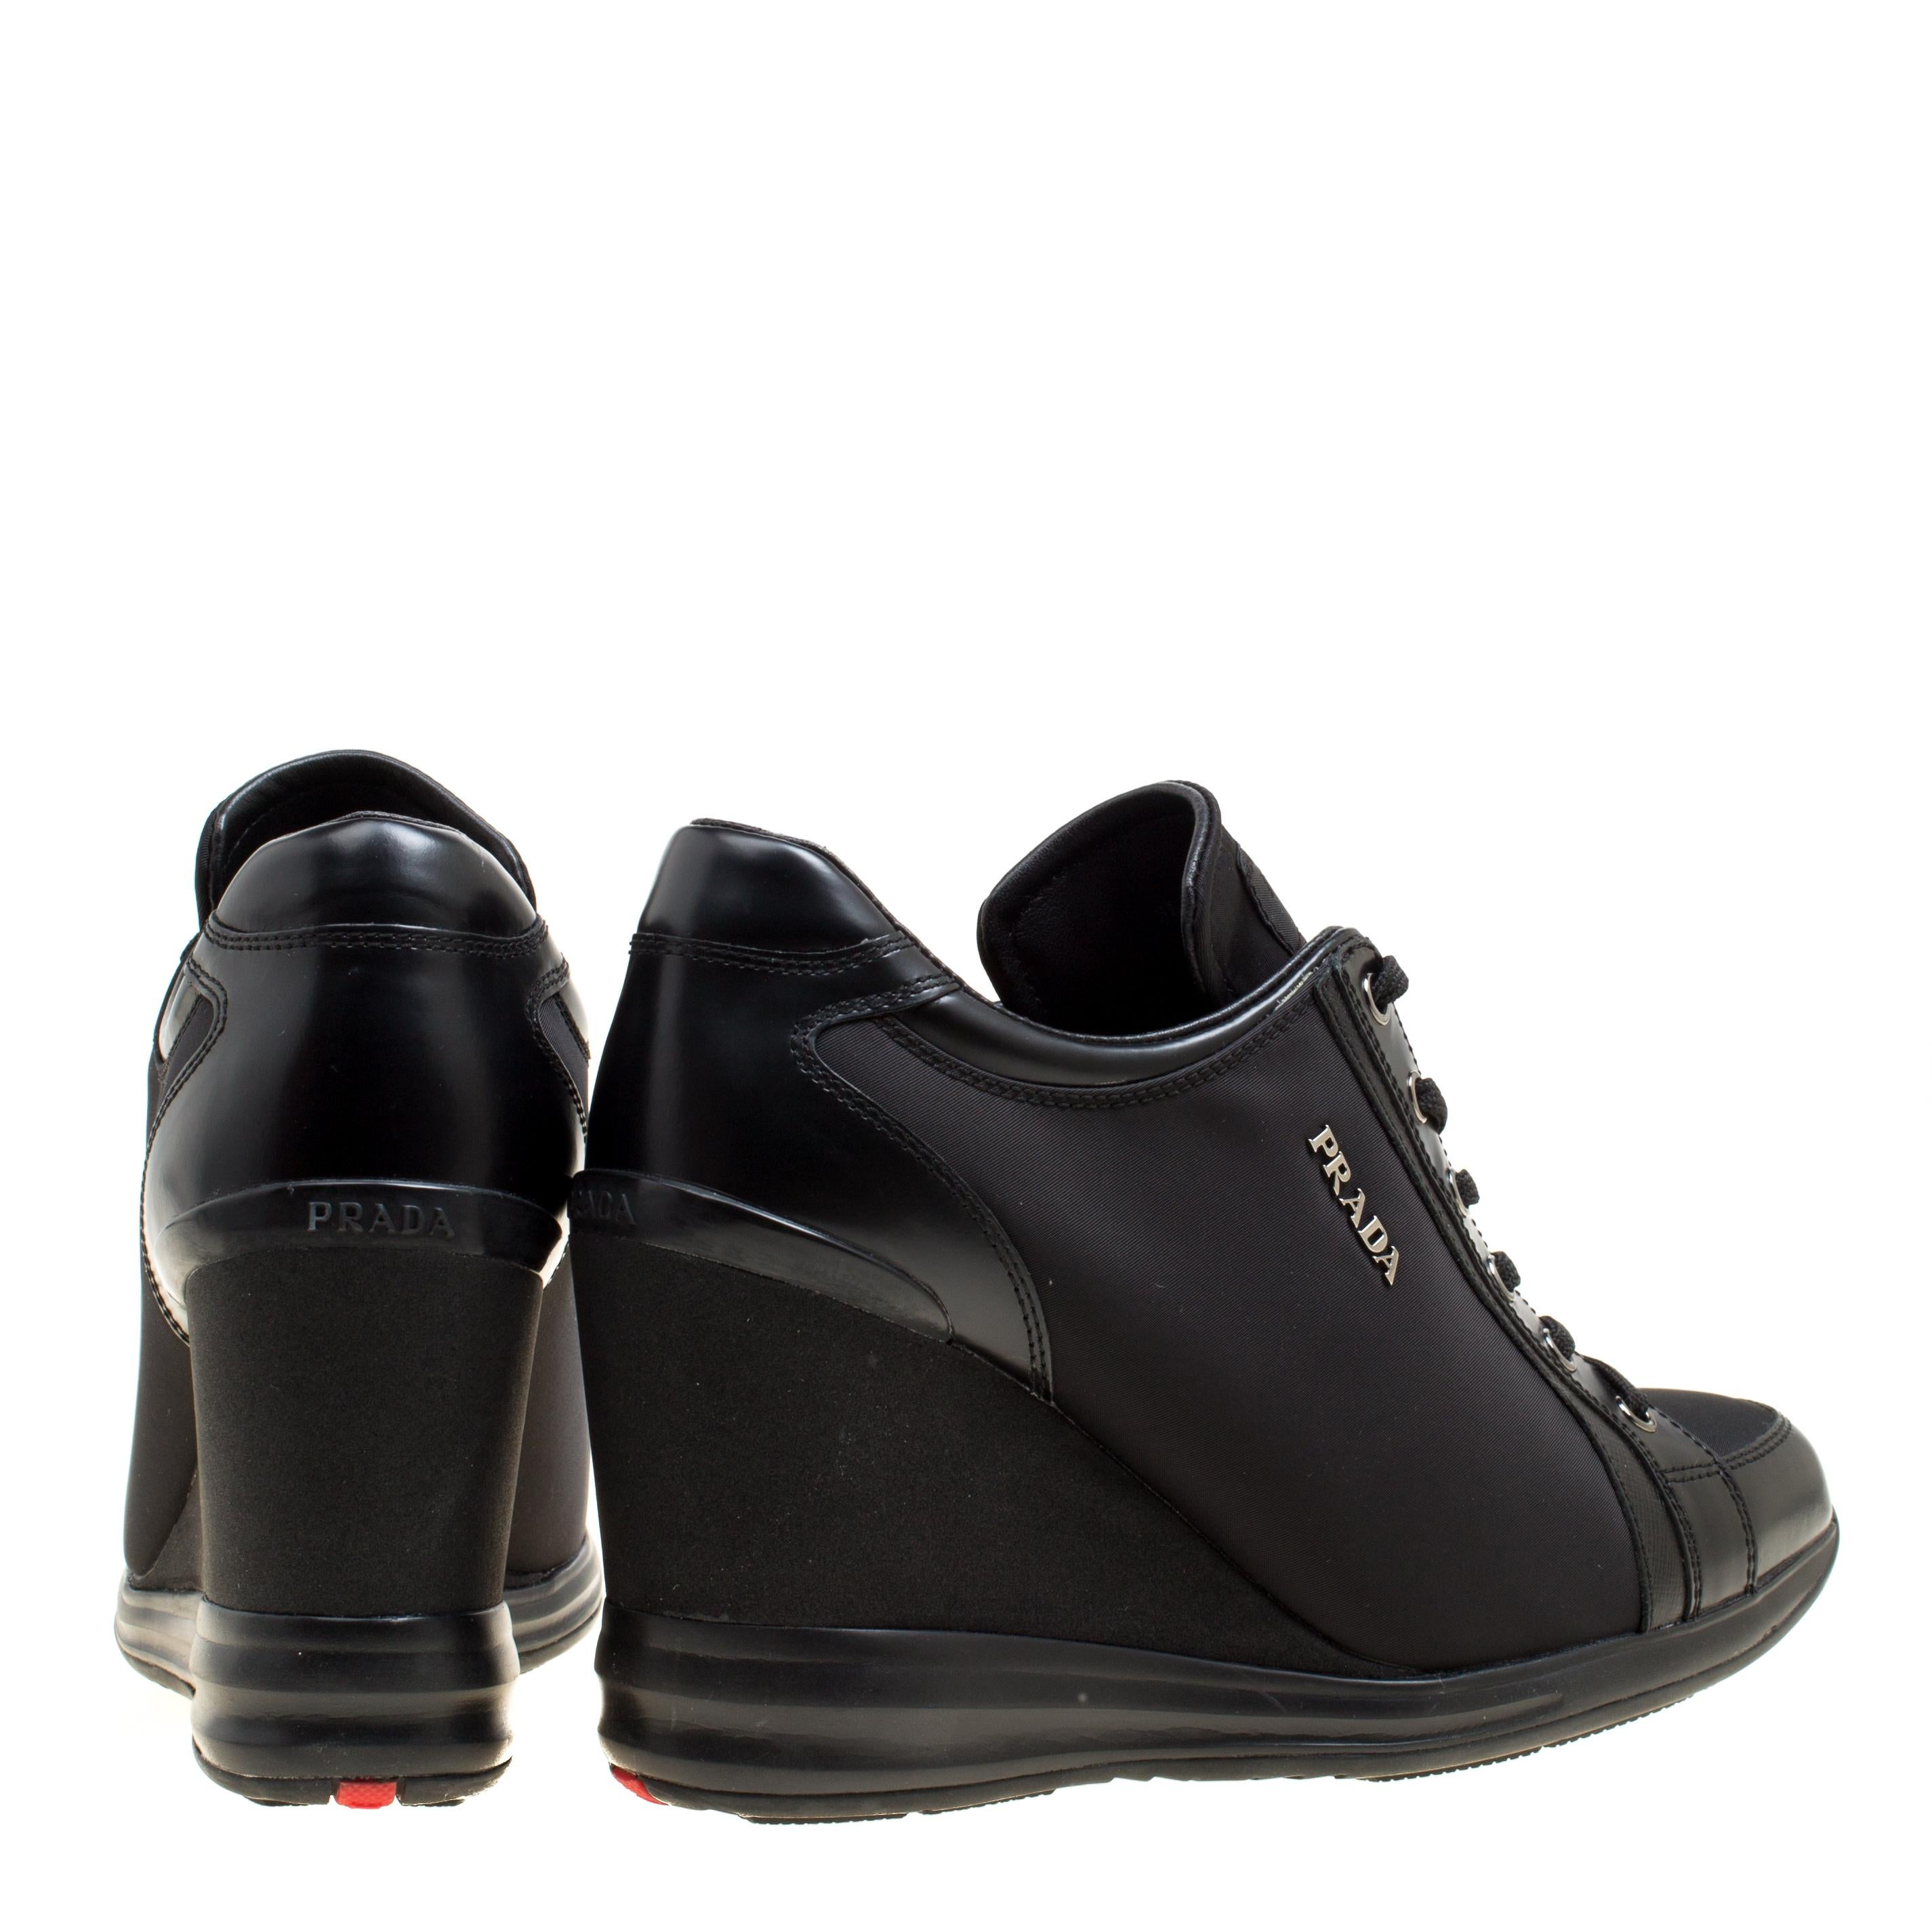 42c6a31881d0 Prada Sport Black Canvas and Leather Wedge Sneakers Size 39.5 For Sale at  1stdibs